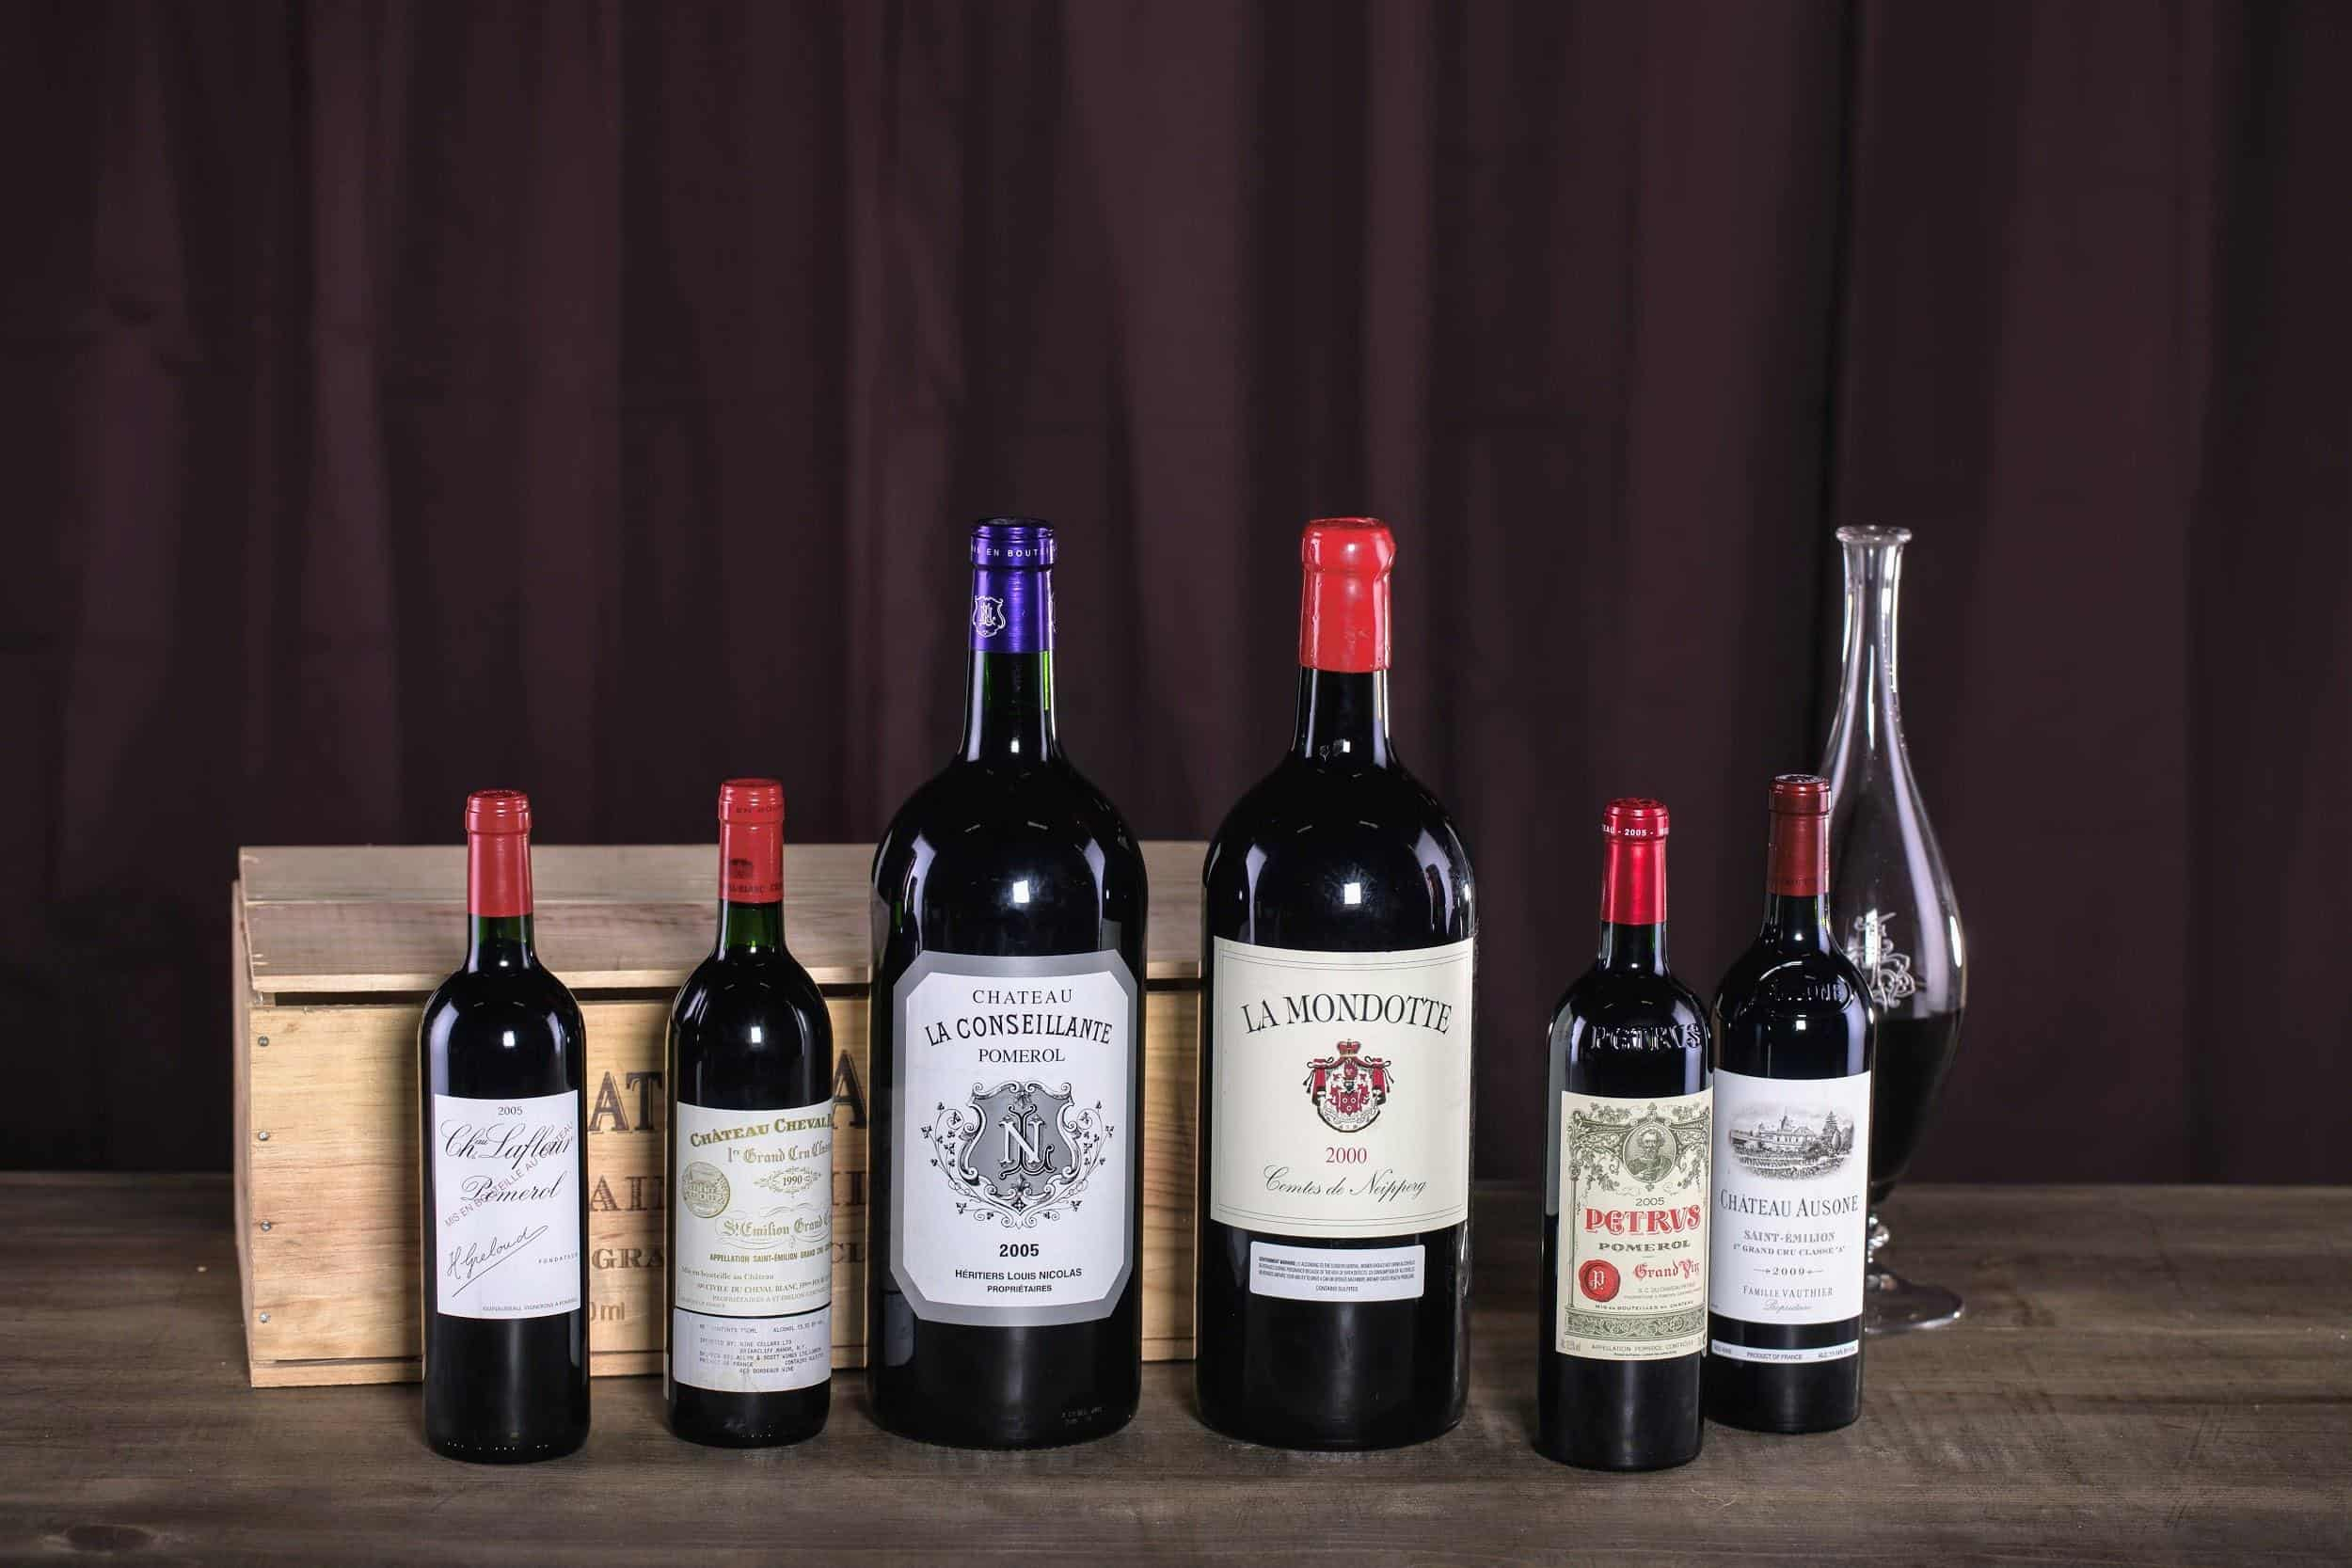 Pomerol vs. Saint-Emilion wines side-by-side